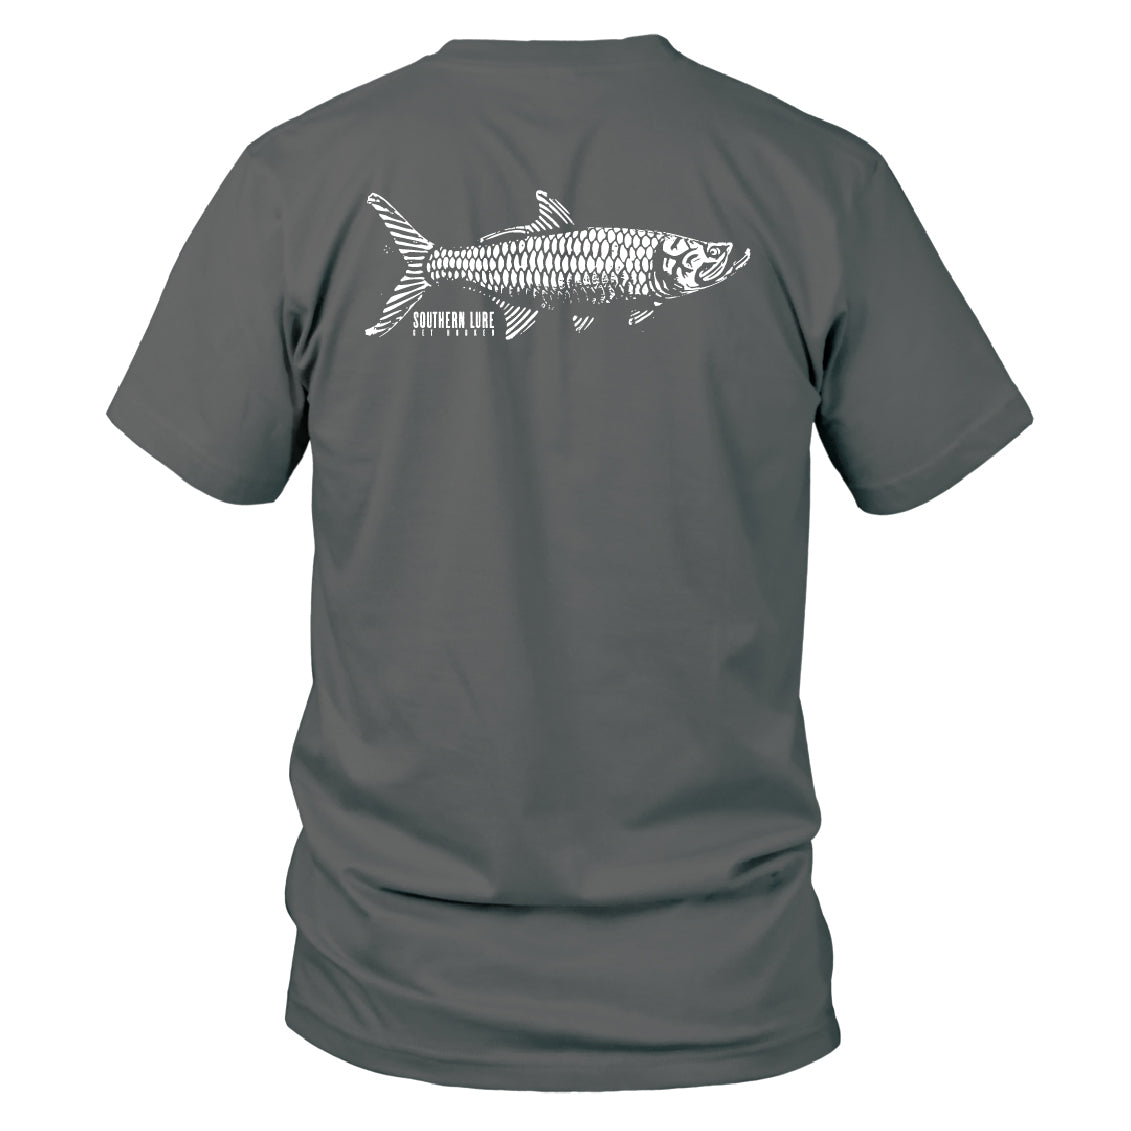 SS Tee - Ink Blot Fish - Pepper